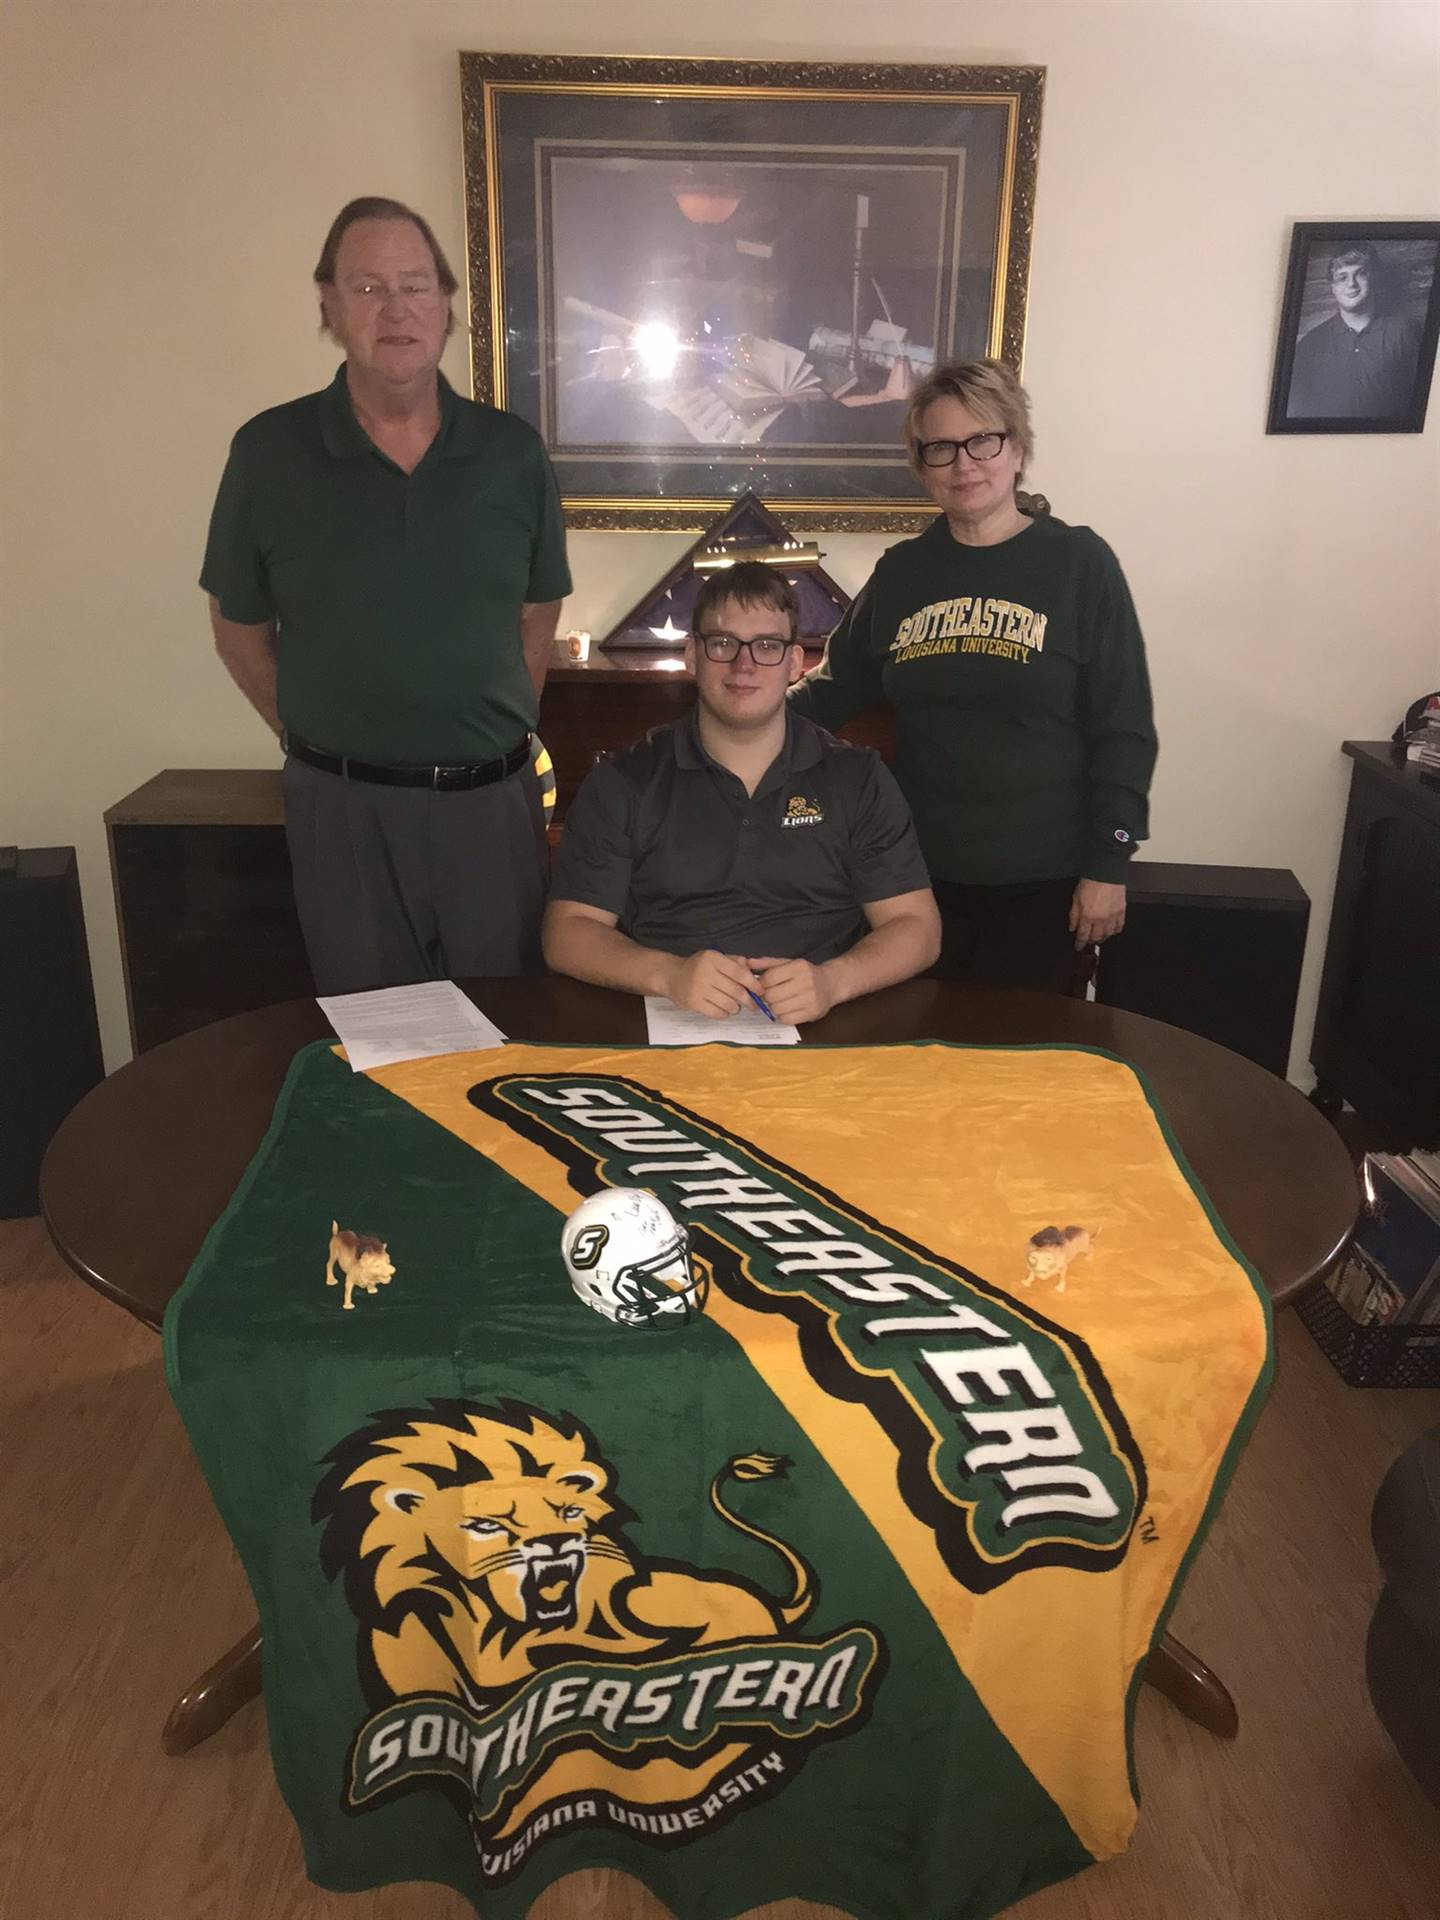 Blakley Miller signs with Southeastern Louisiana University to play Football